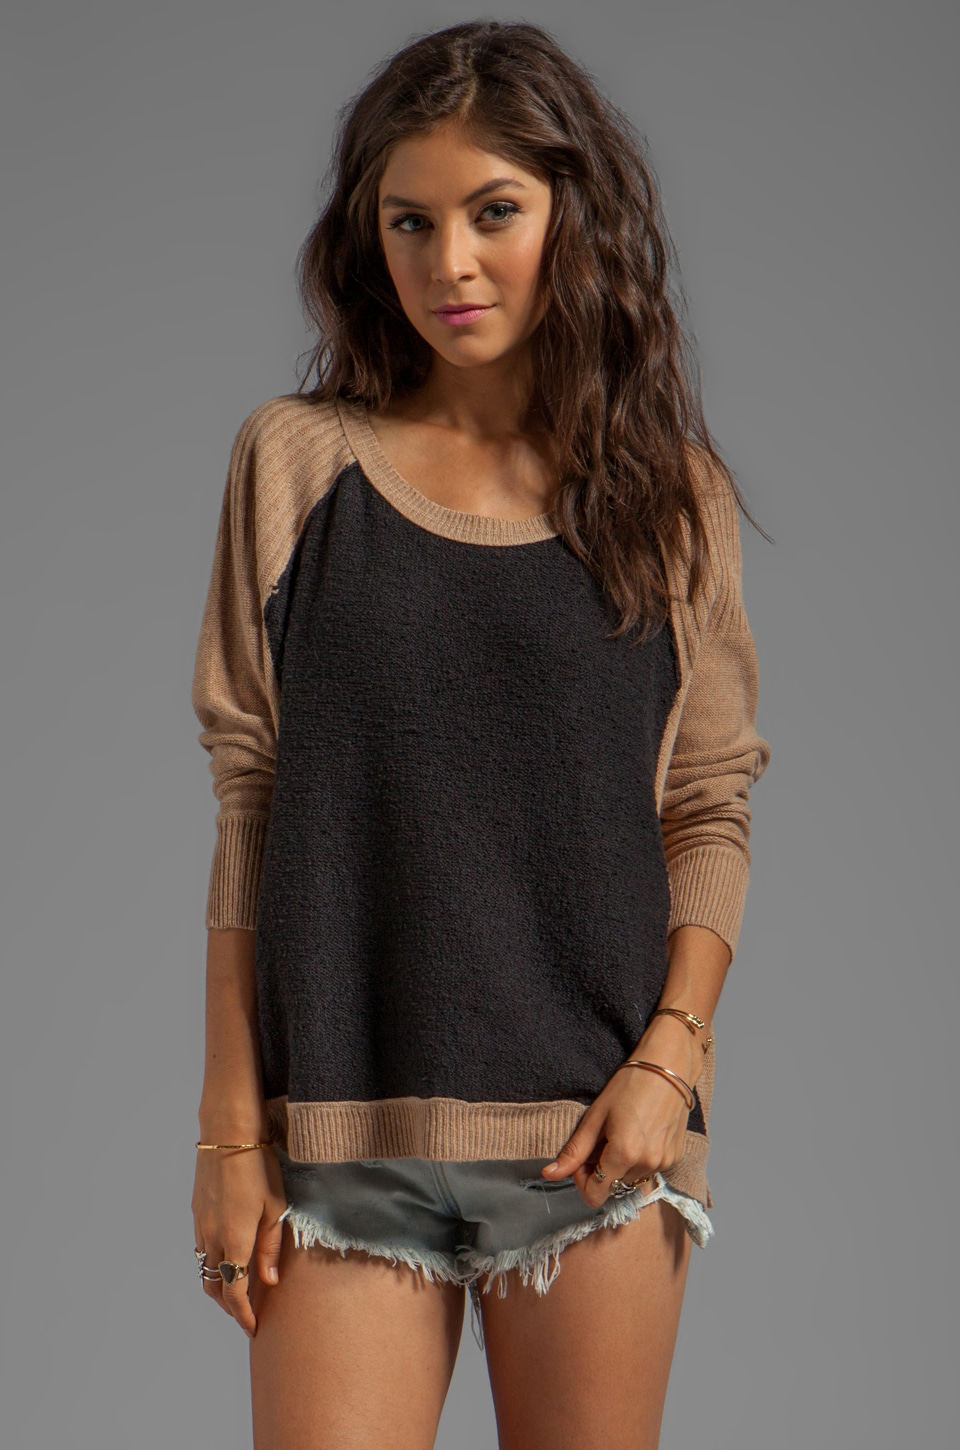 Free People Tabbard Pullover Sweater in Black/Camel Combo